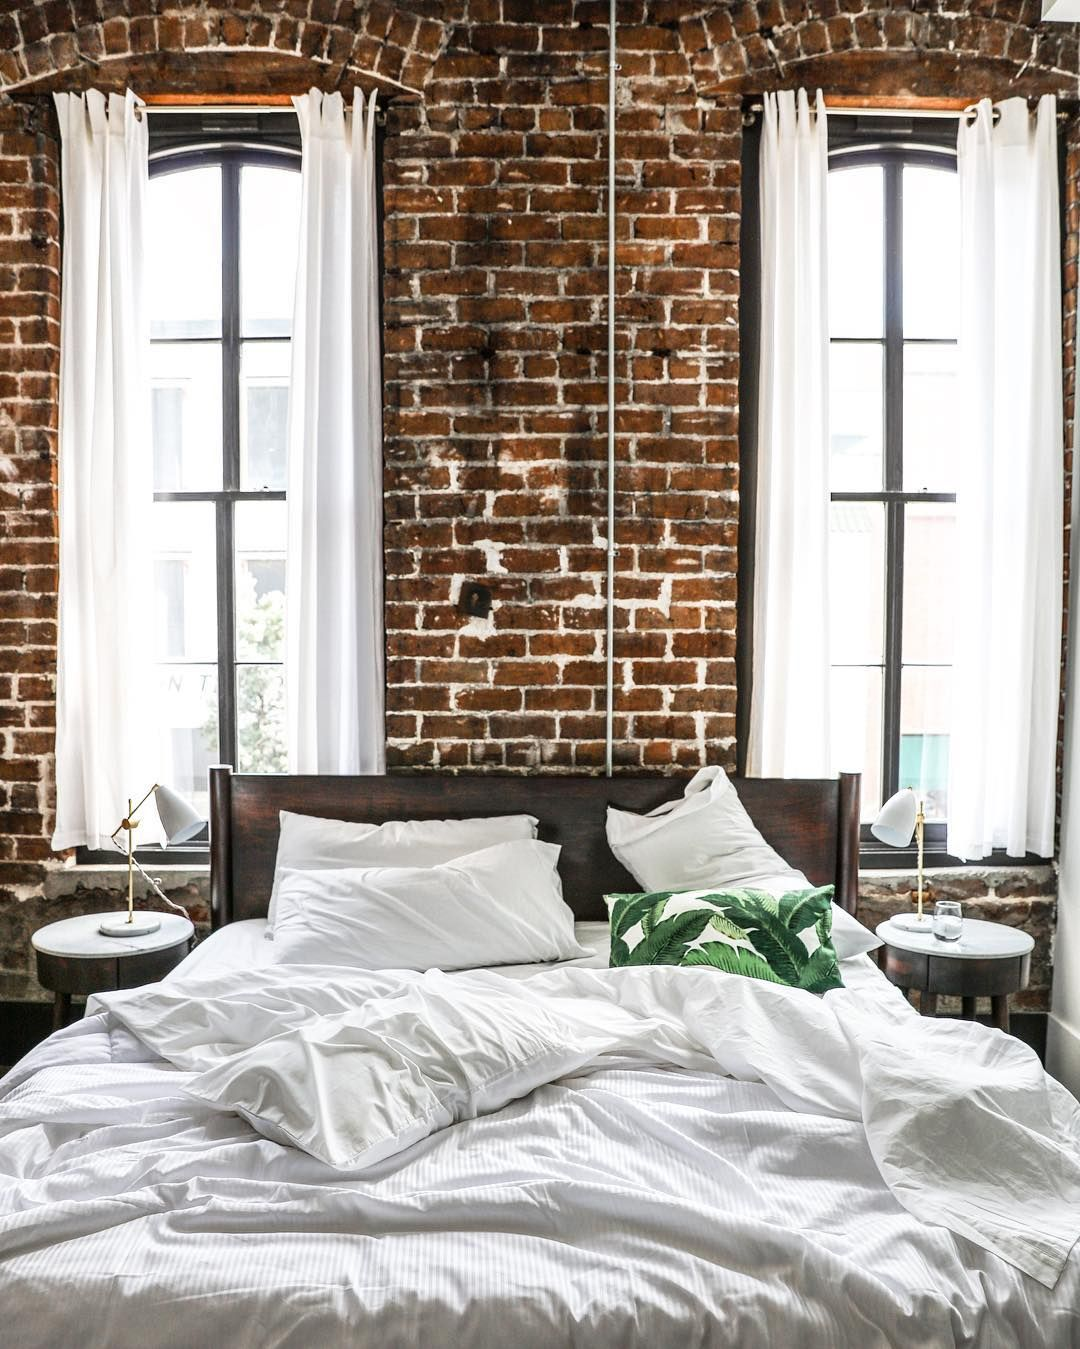 37+ White Brick Walls Design Ideas Will Inspire You Tags: White Brick Wall  Bedroom